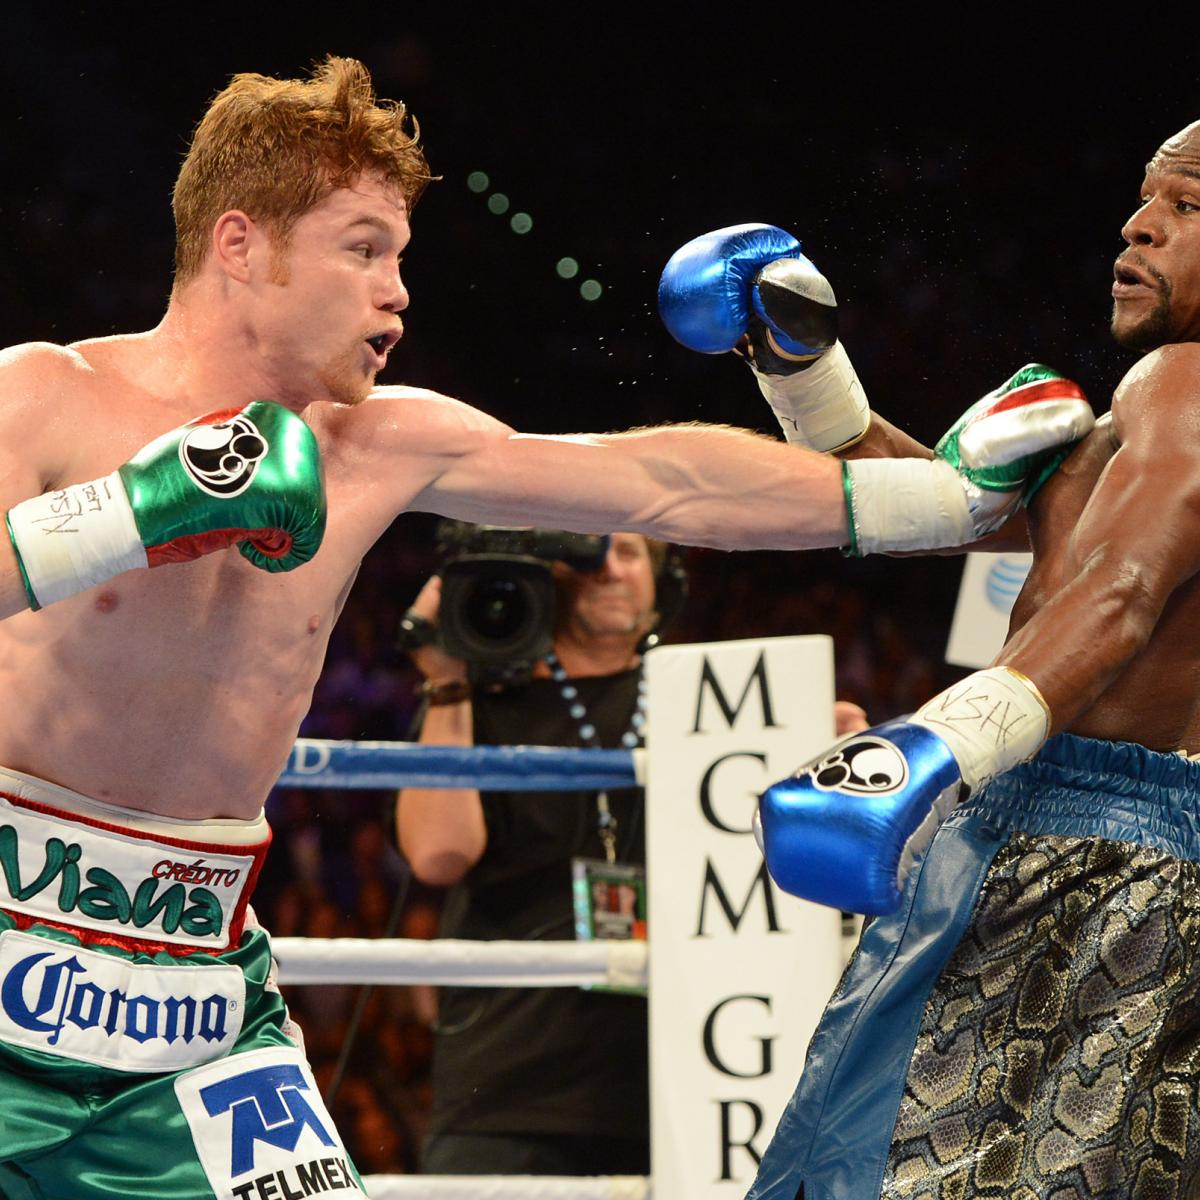 De la hoya blueprint canelos loss shows theres no formula to beat de la hoya blueprint canelos loss shows theres no formula to beat mayweather bleacher report latest news videos and highlights malvernweather Gallery